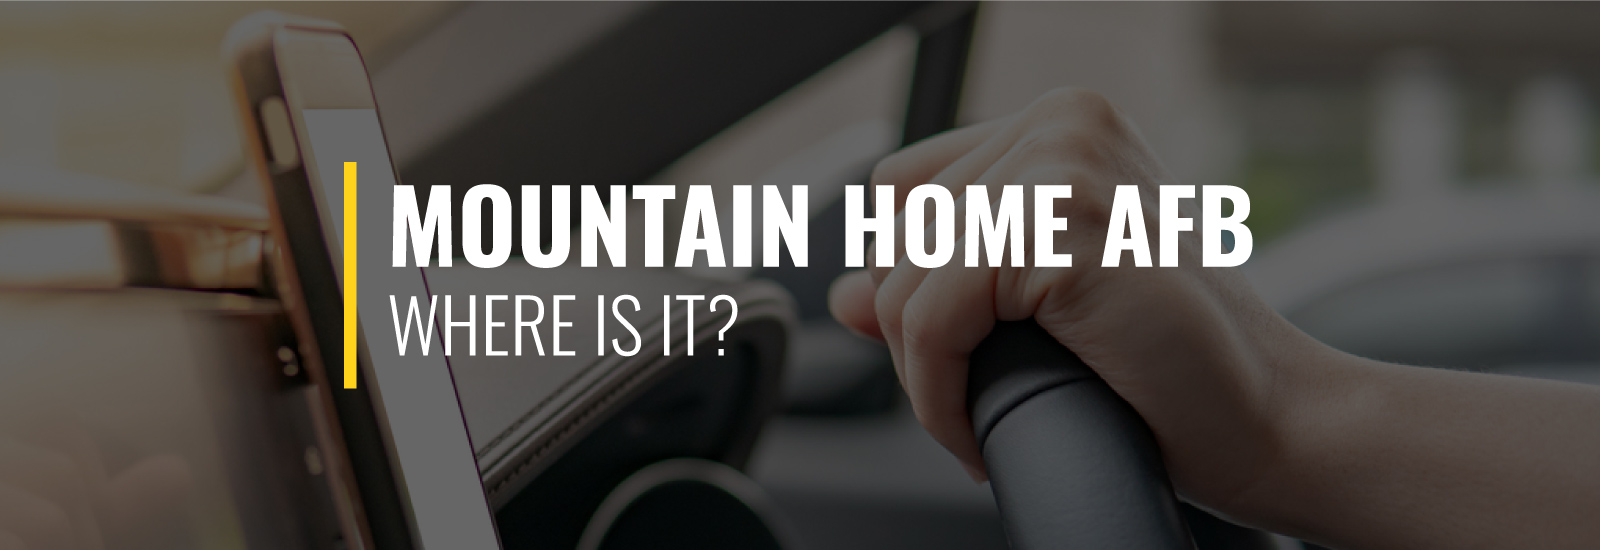 Where Is Mountain Home AFB?